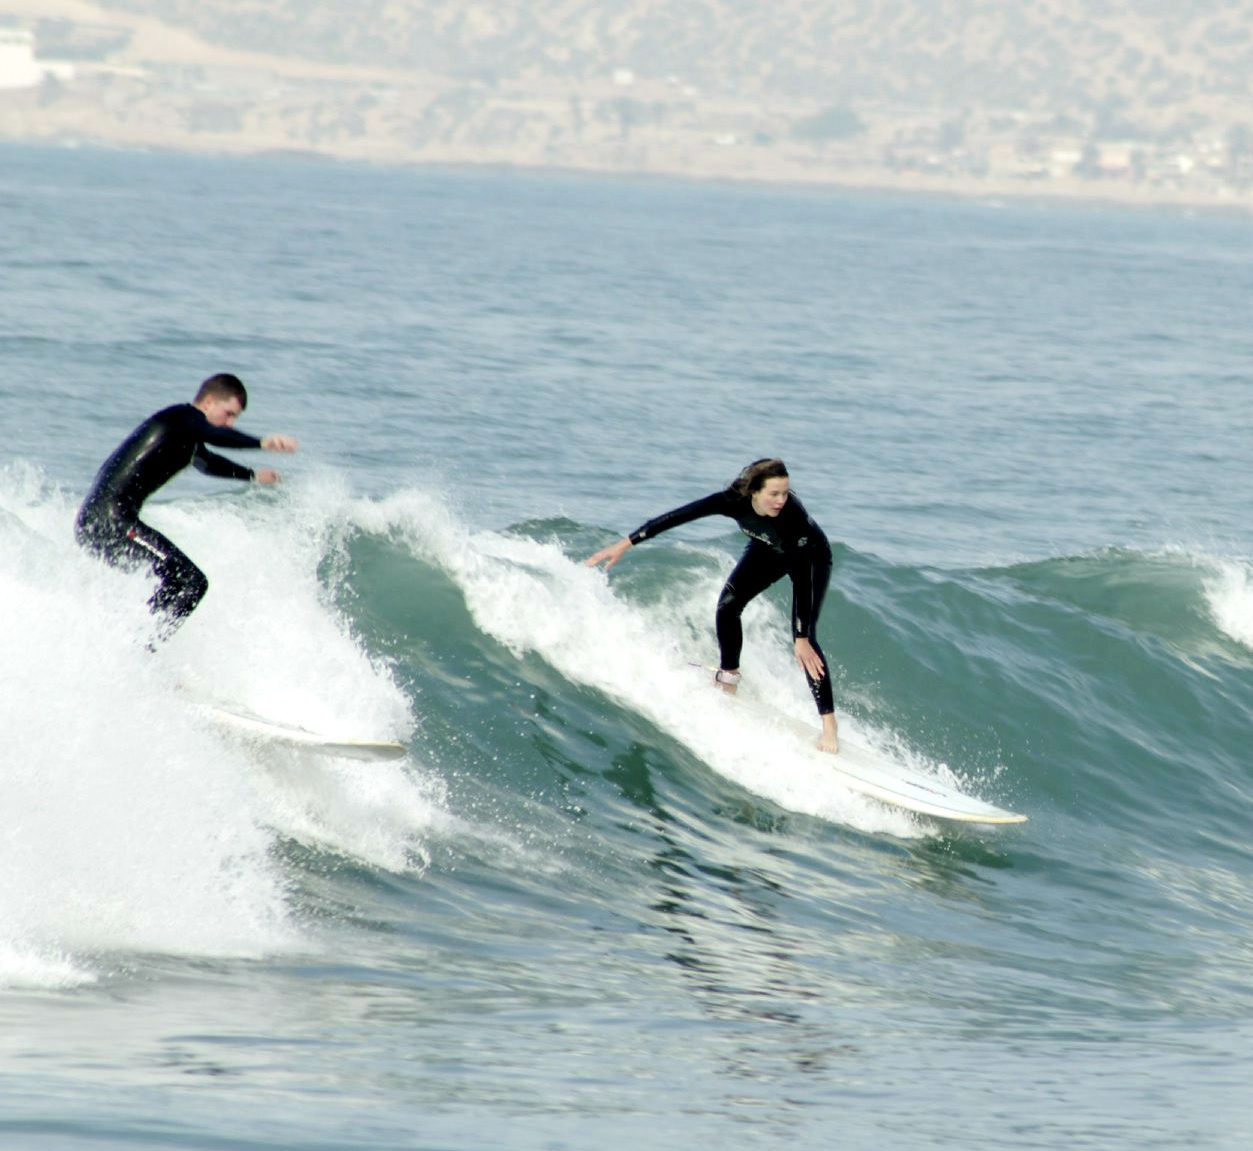 Taghazout surf camp: Beginner surfing holiday in Morocco